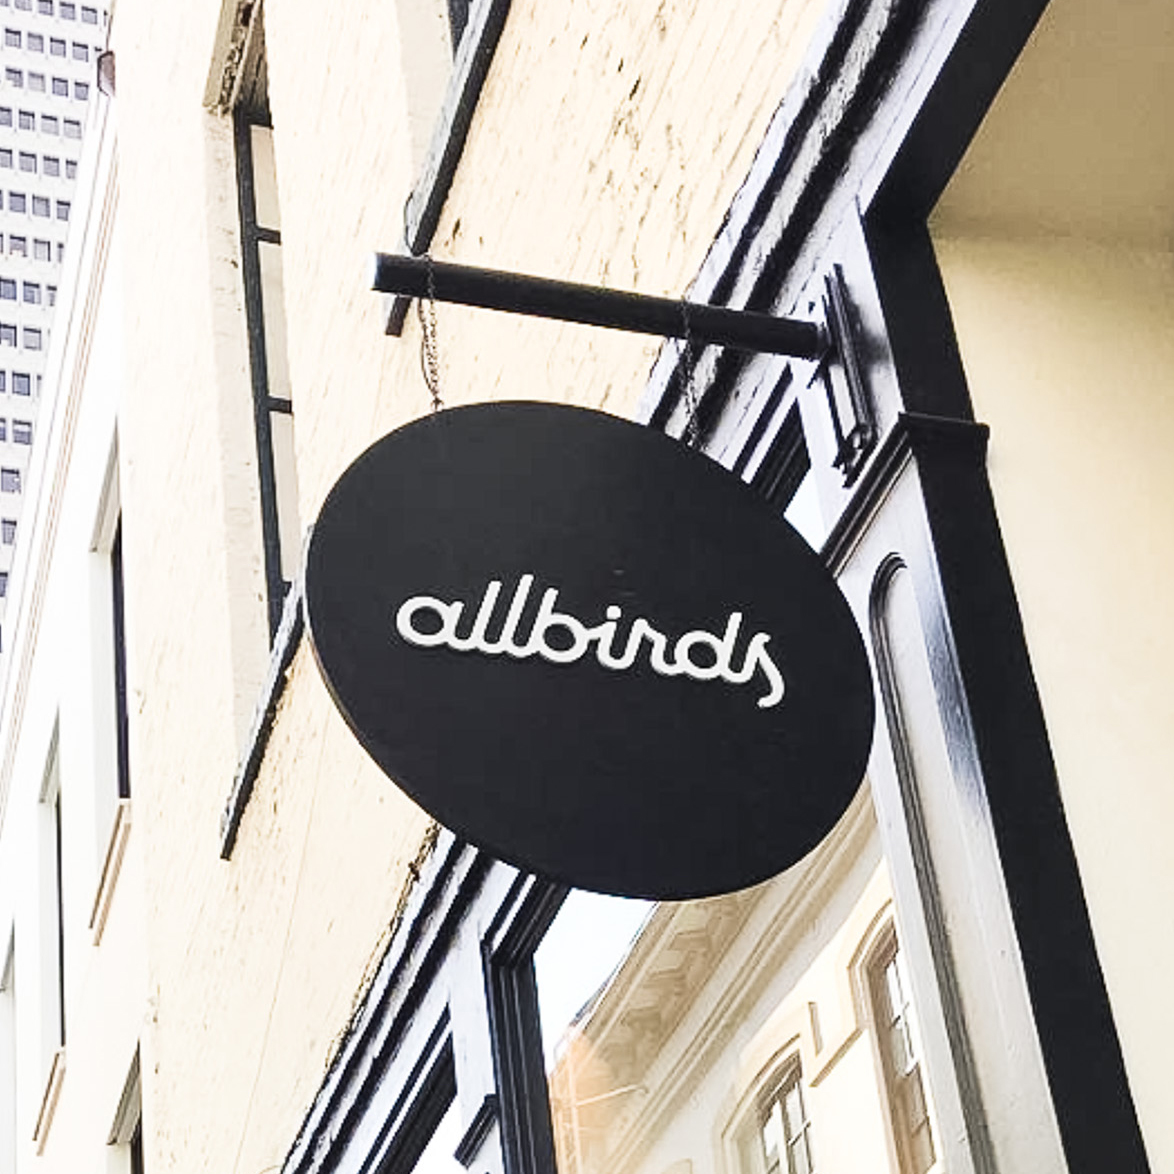 Black round blade sign with white script text for Allbirds, a San Francisco-based direct-to-consumer startup aimed at designing environmentally friendly footwear.